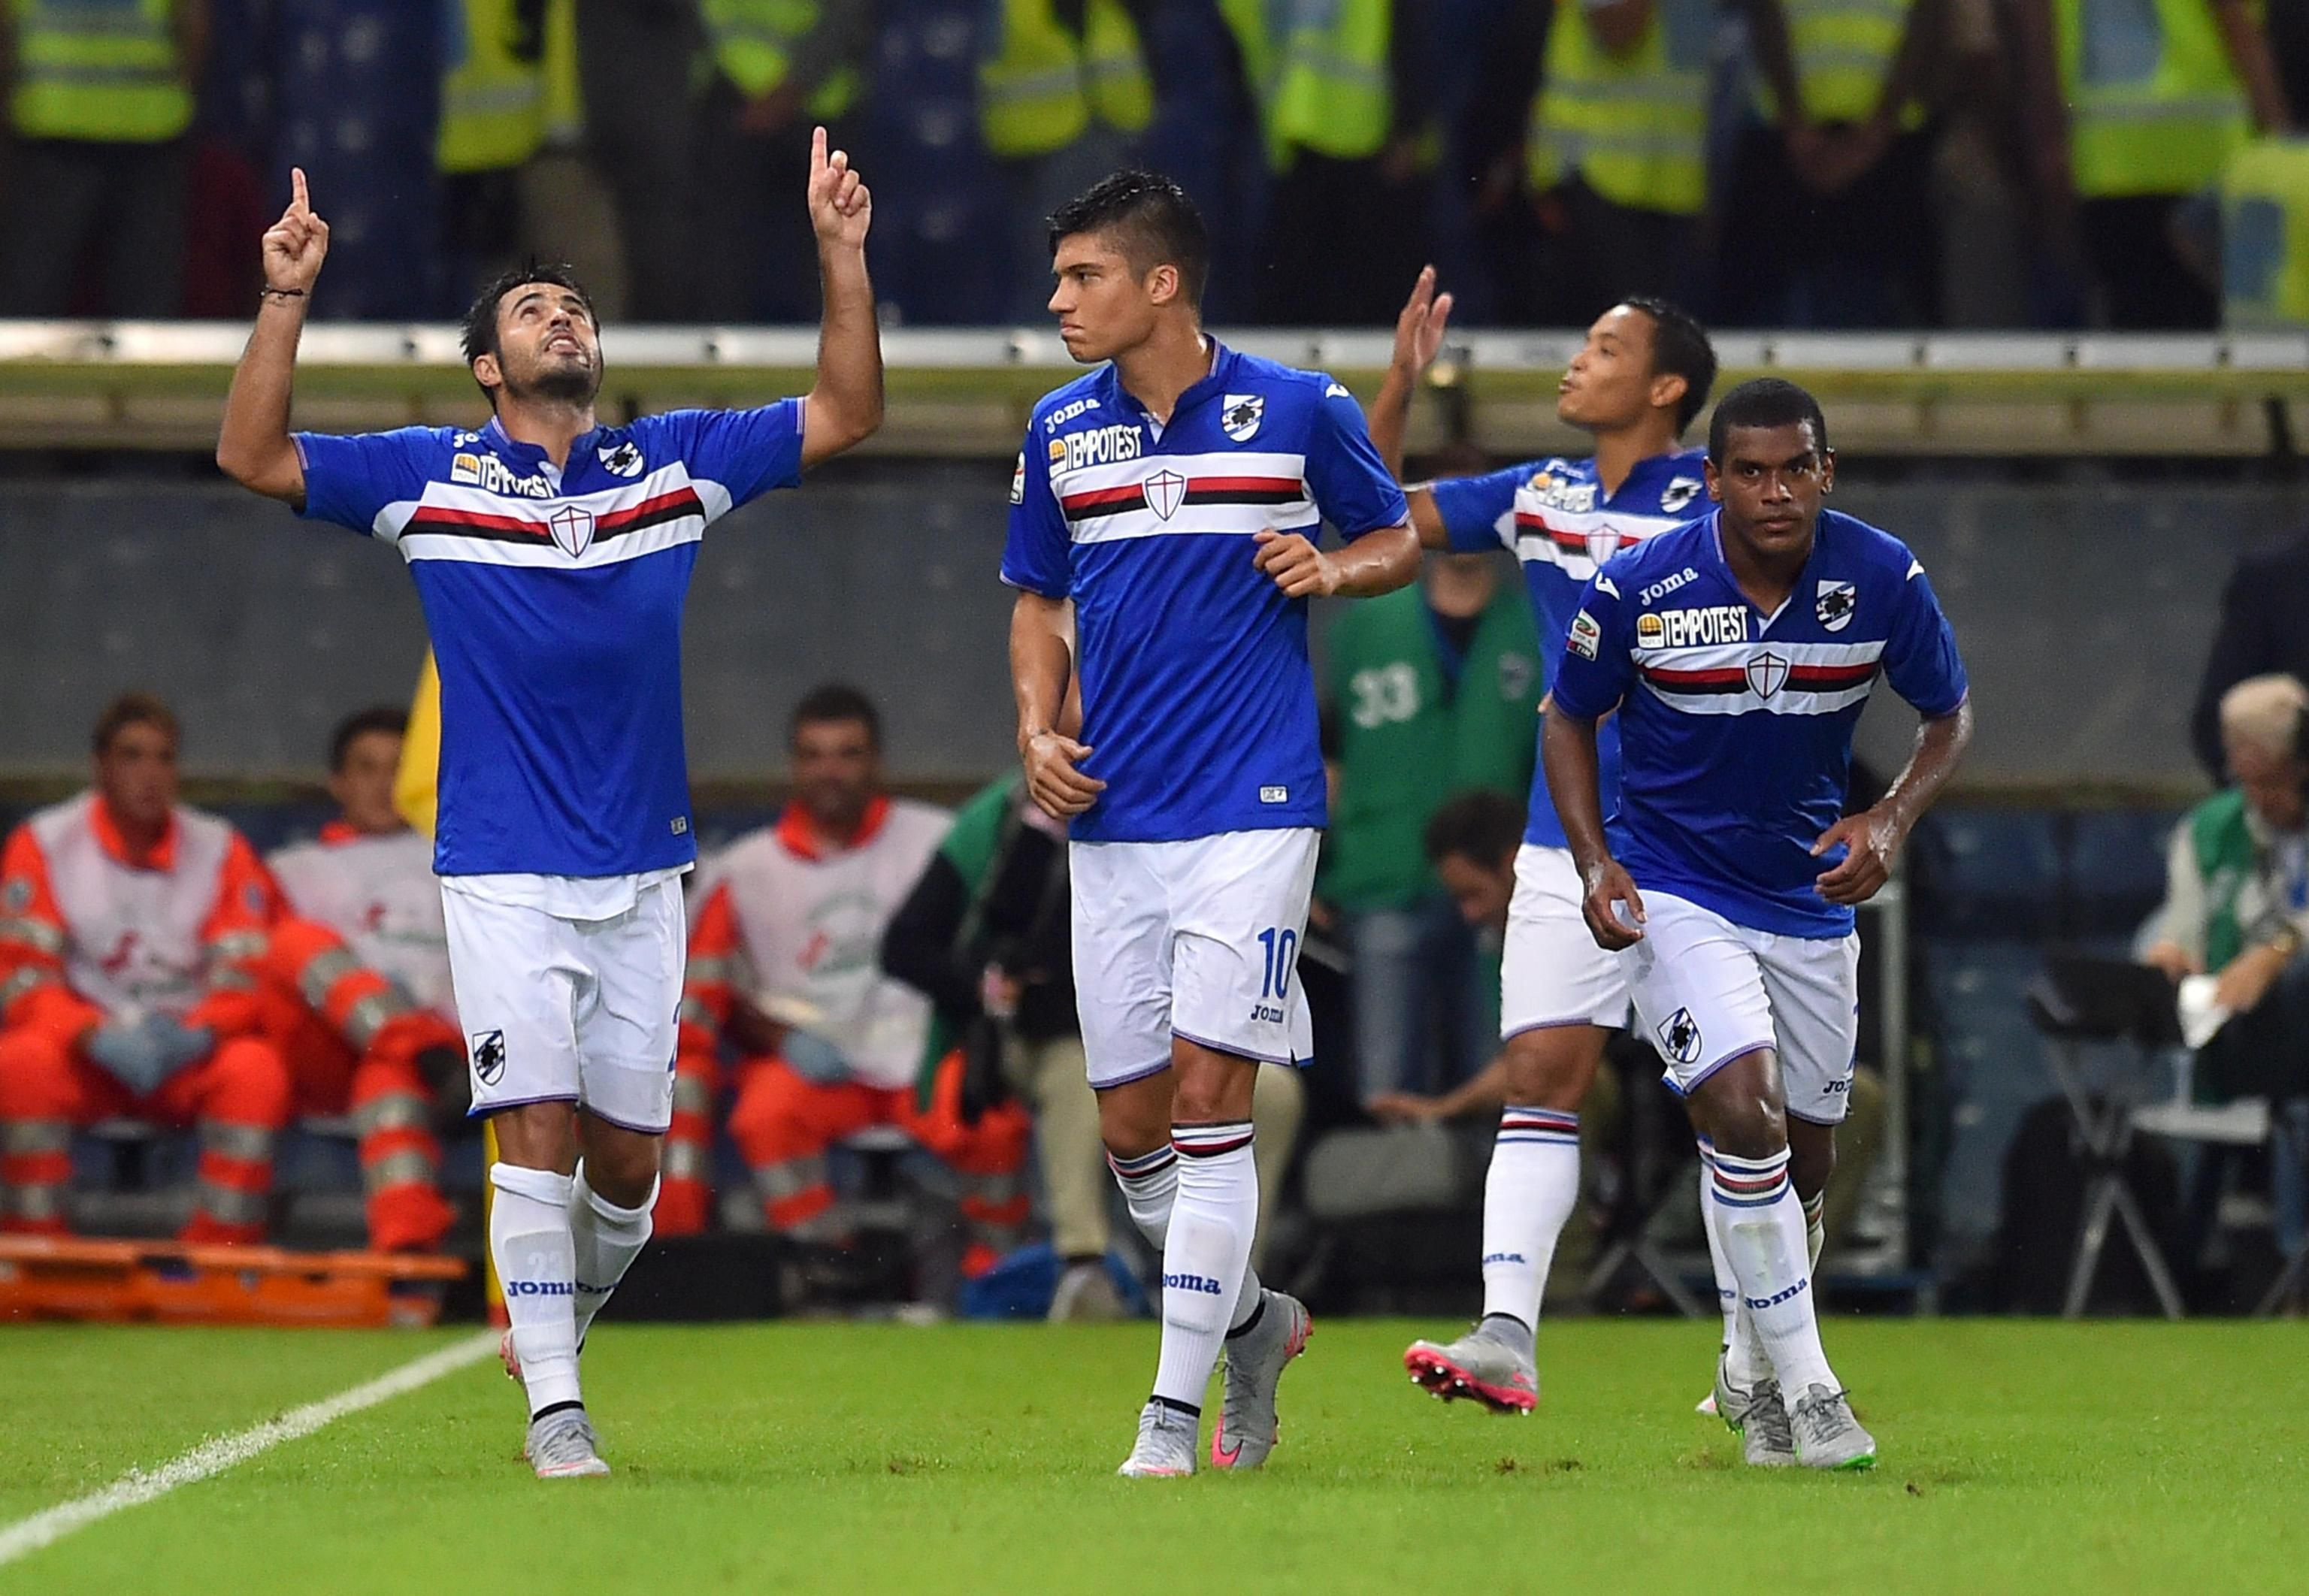 [27.11.2016] Crotone Vs Sampdoria Live Match, Live